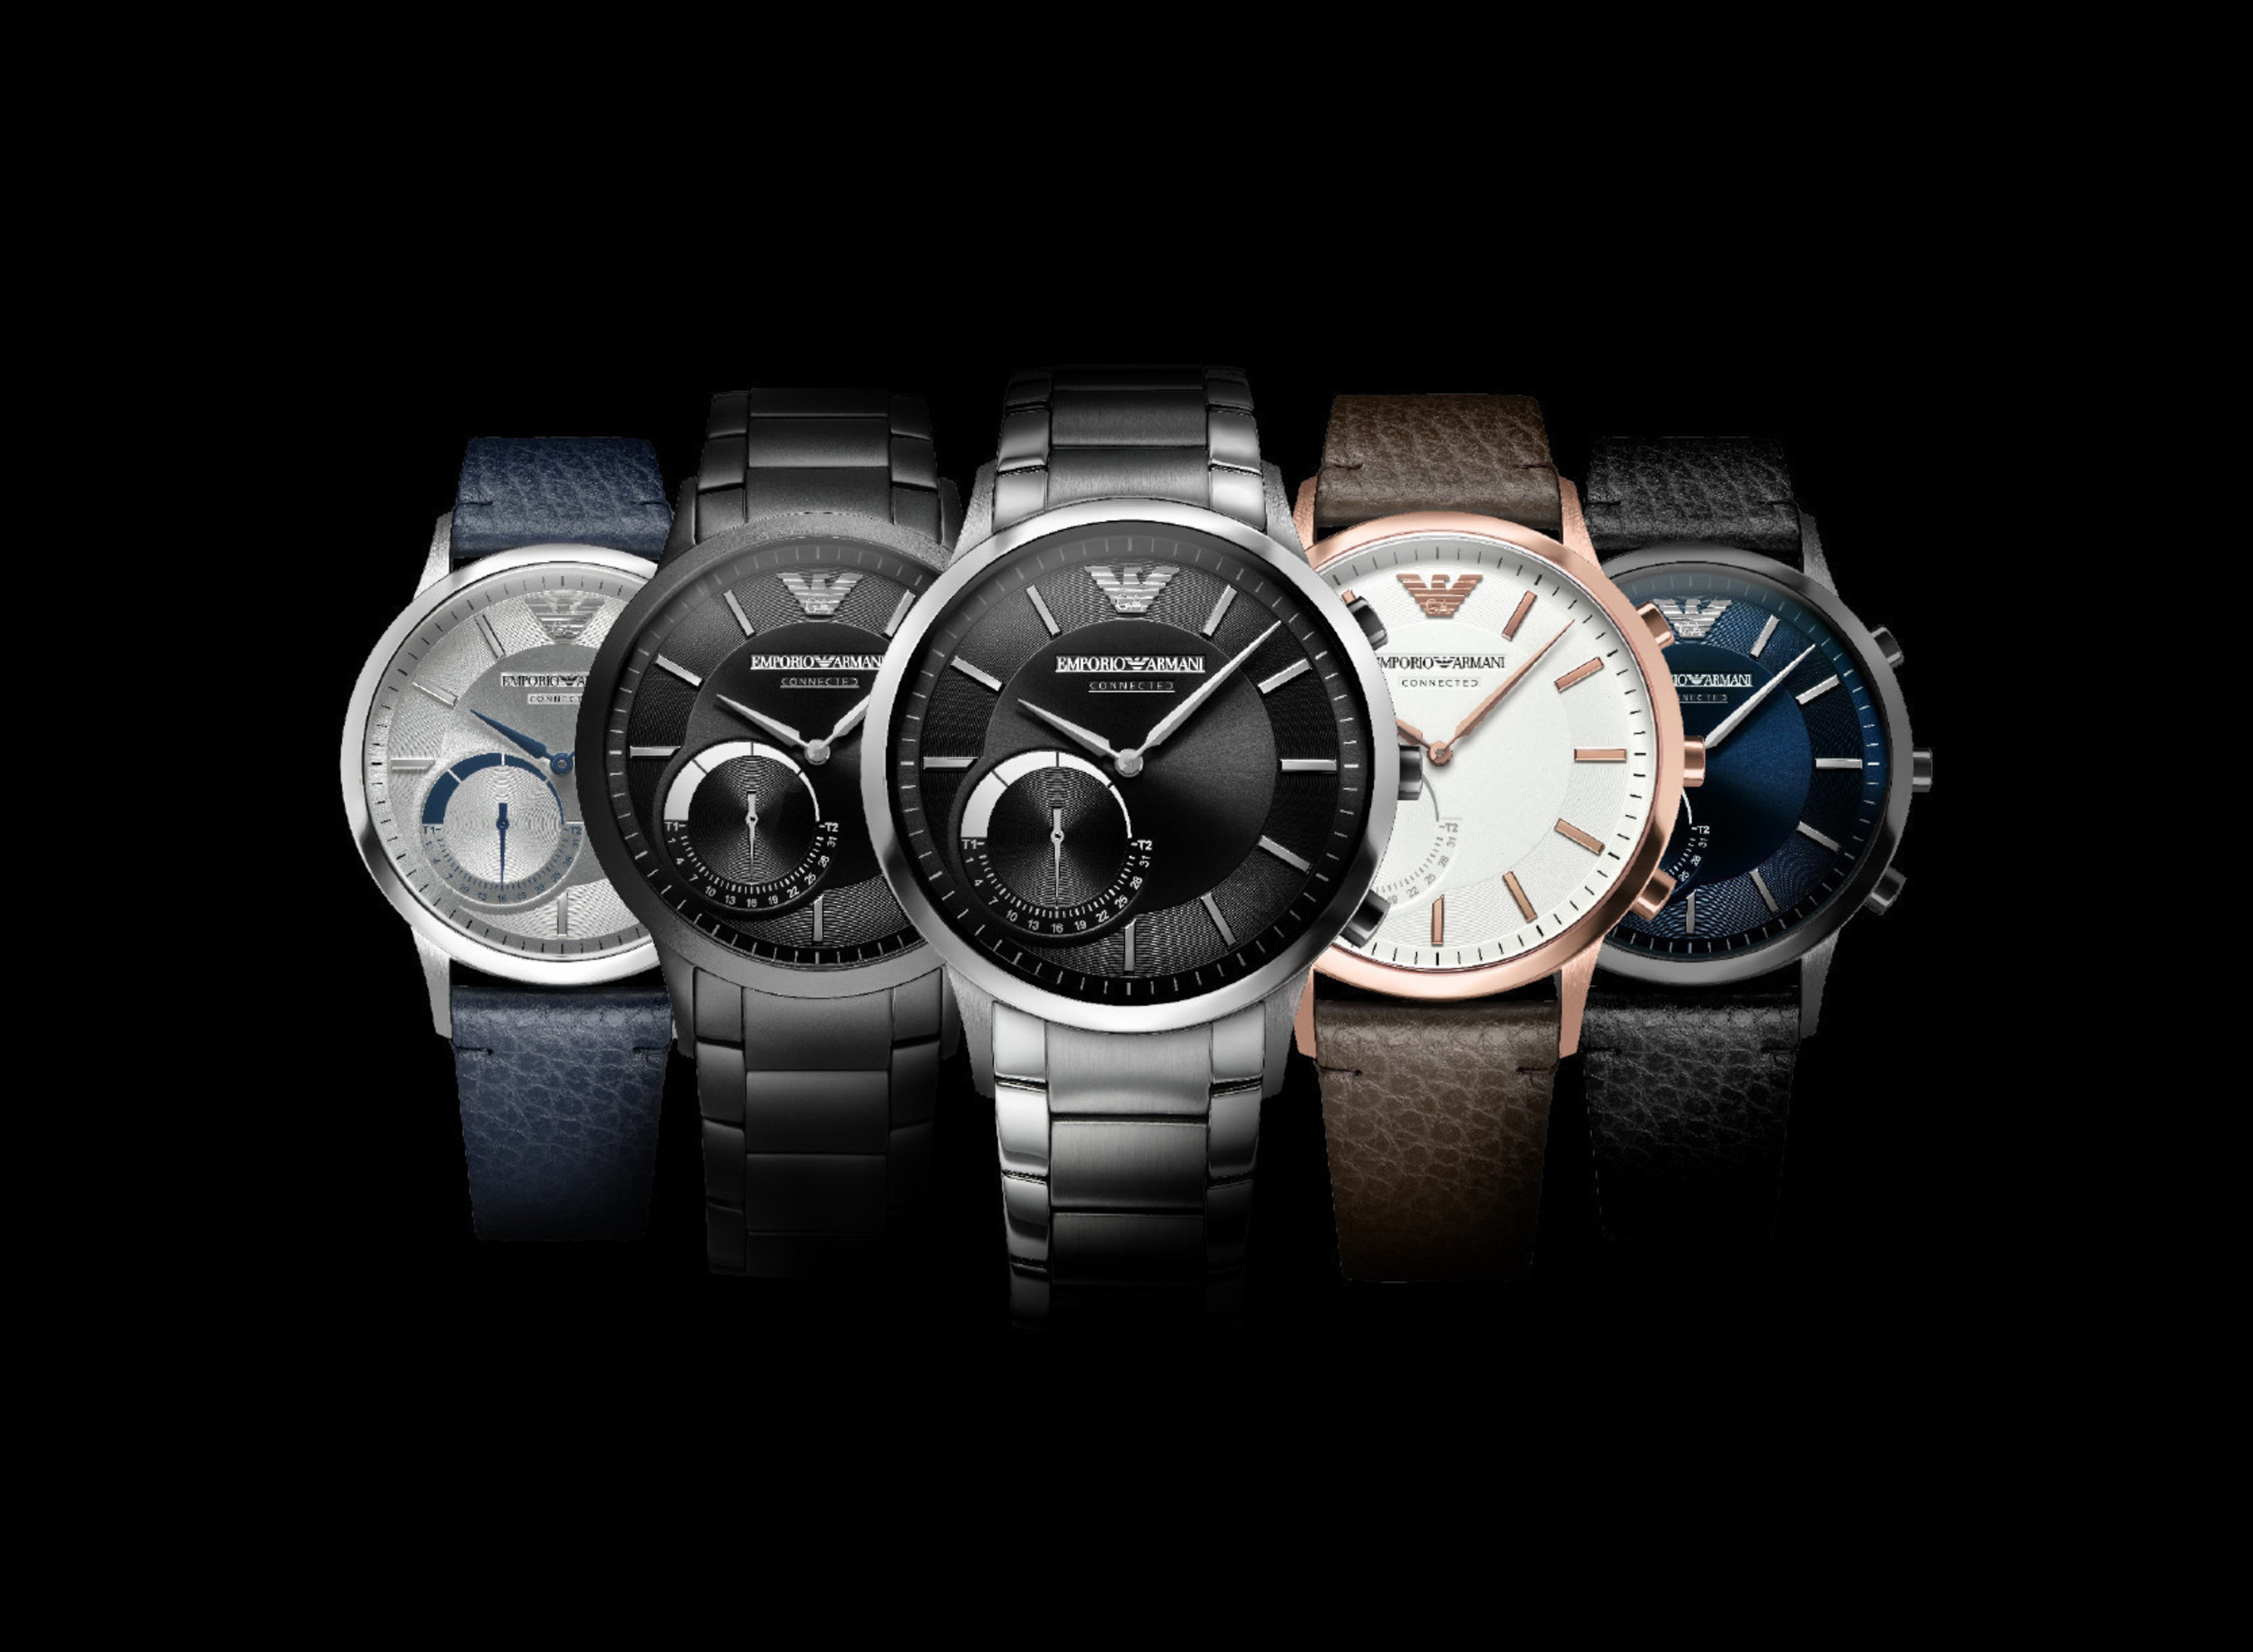 The Emporio Armani Connected Hybrid Smartwatch Collection